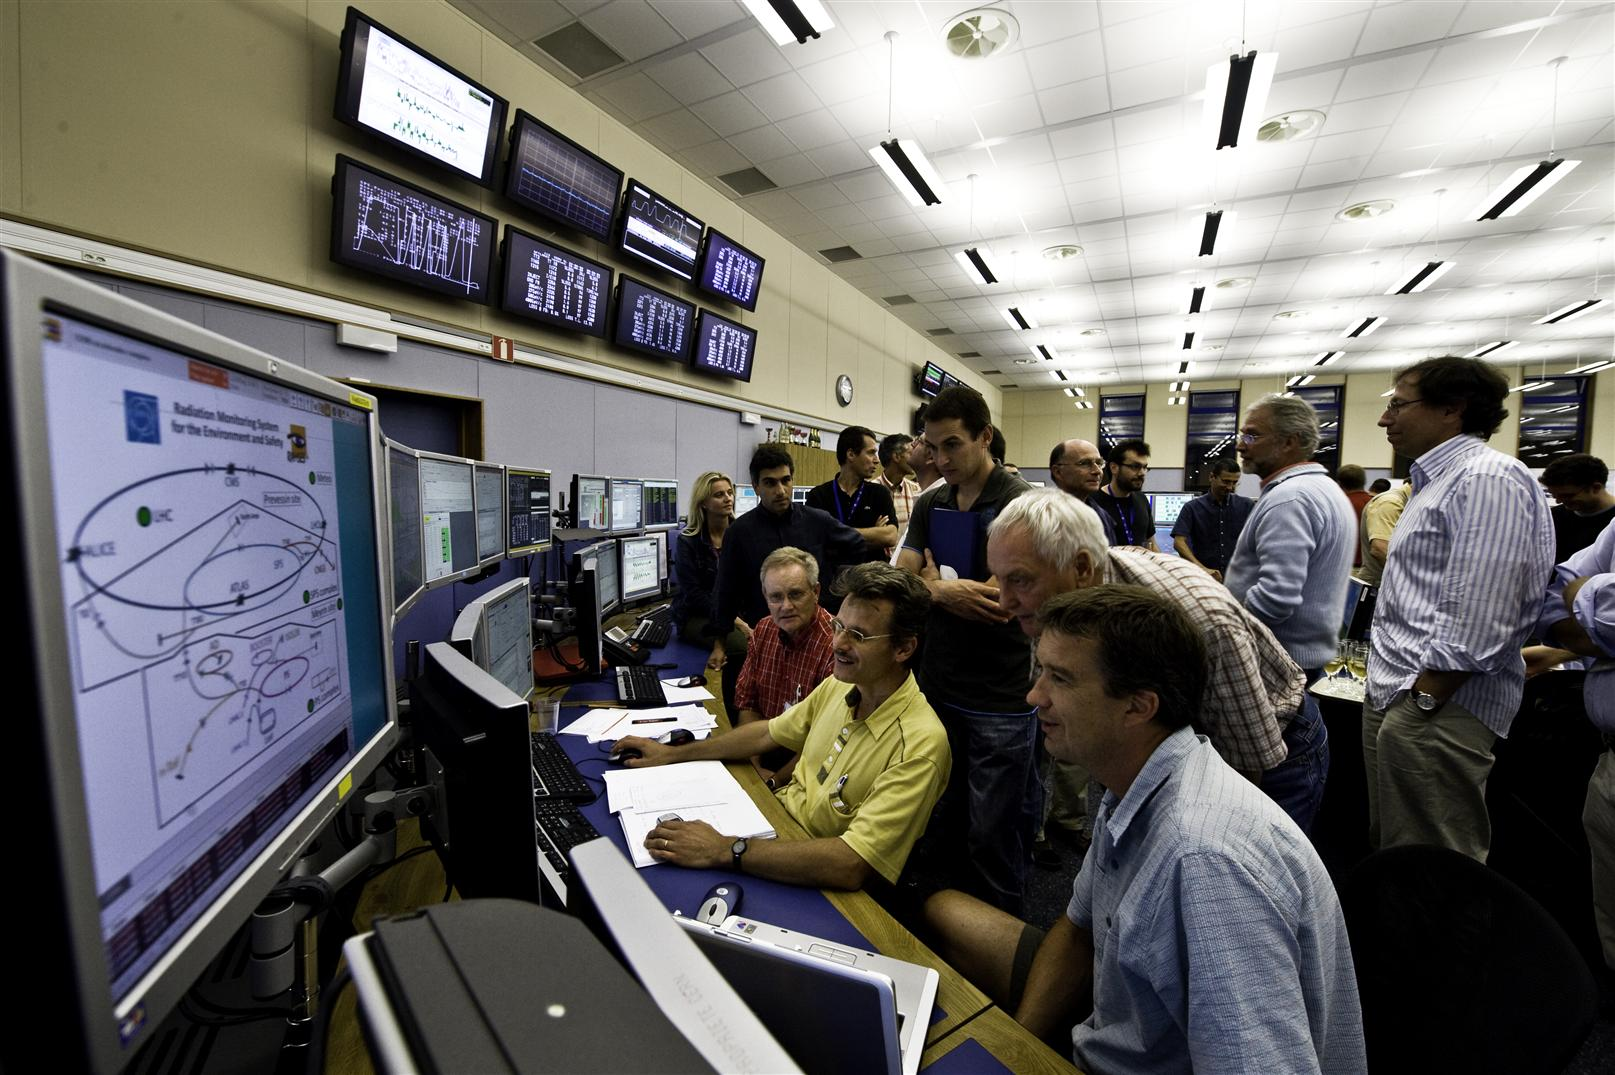 In a 2008 test of the LHC beam synchronization systems, accelerator scientists watch as the first proton bunch made its way from the SPS to the LHC. This is just one of many critical steps toward colliding high-energy protons. (Image courtesy CERN.)